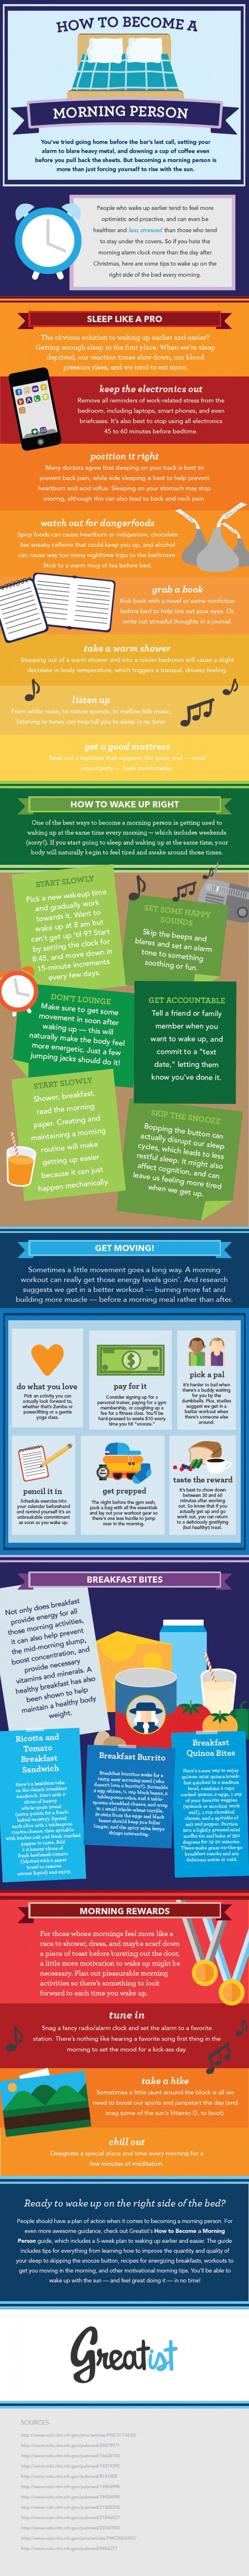 How to Become a Morning Person #Infographic